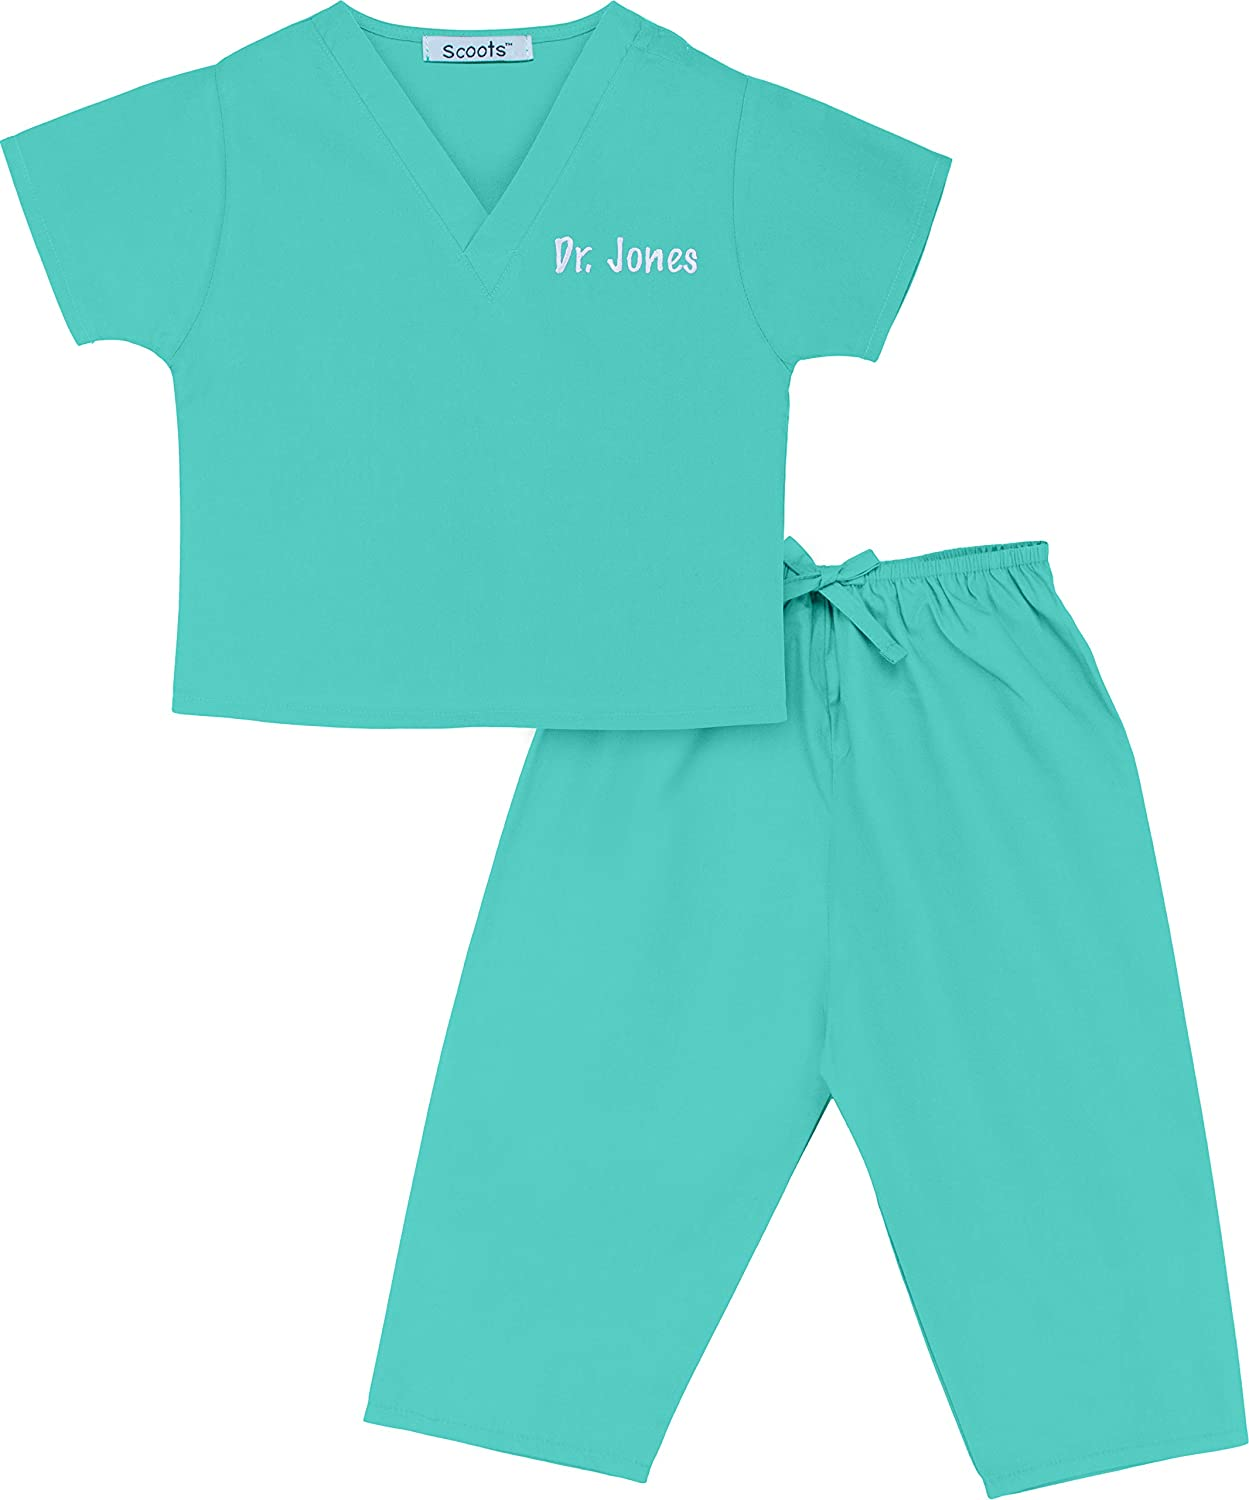 e64176f423f Amazon.com  Scoots - Personalized Kids Scrubs